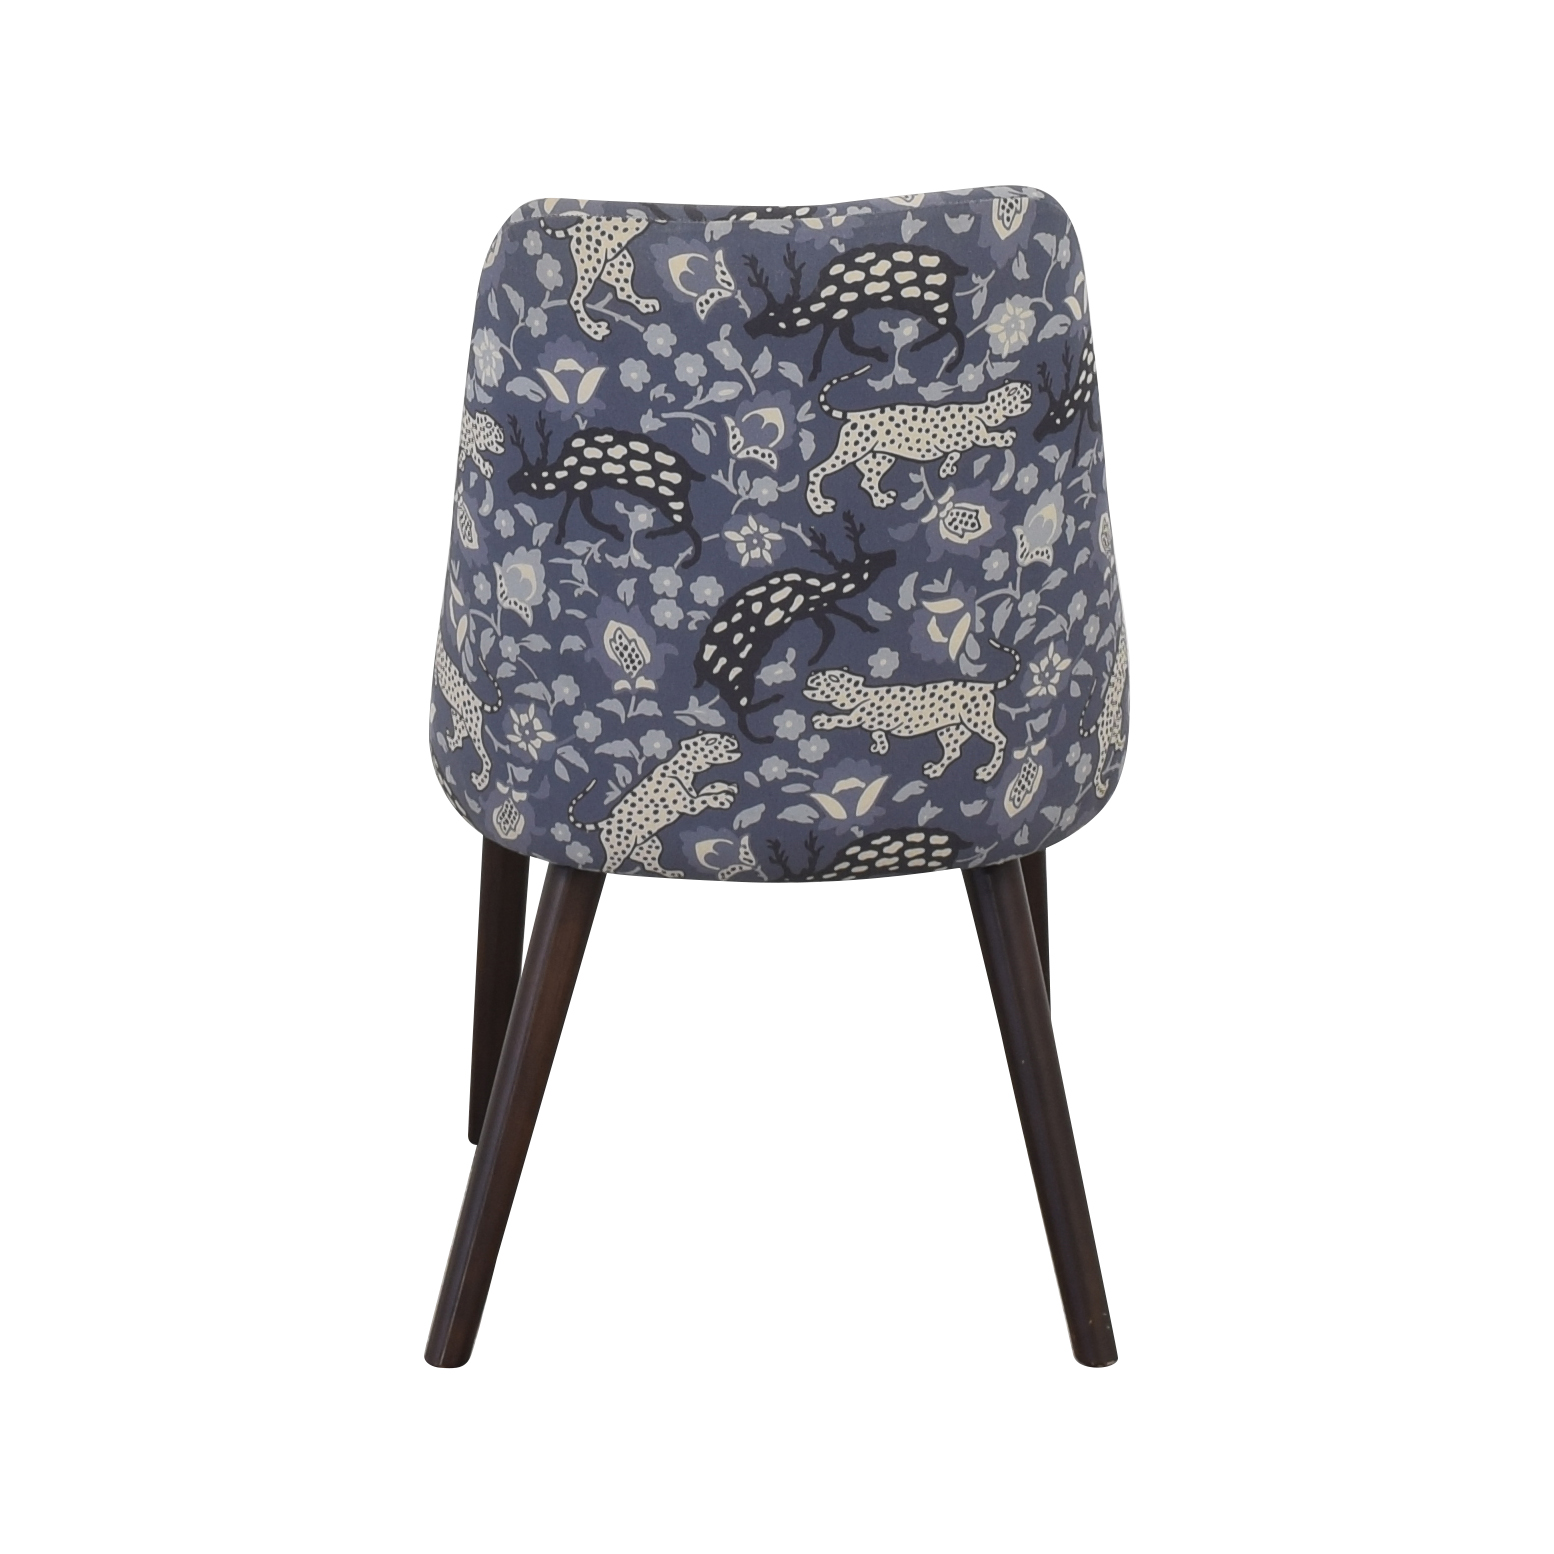 Skyline Furniture Skyline Patterned Upholstered Dining Chair nyc